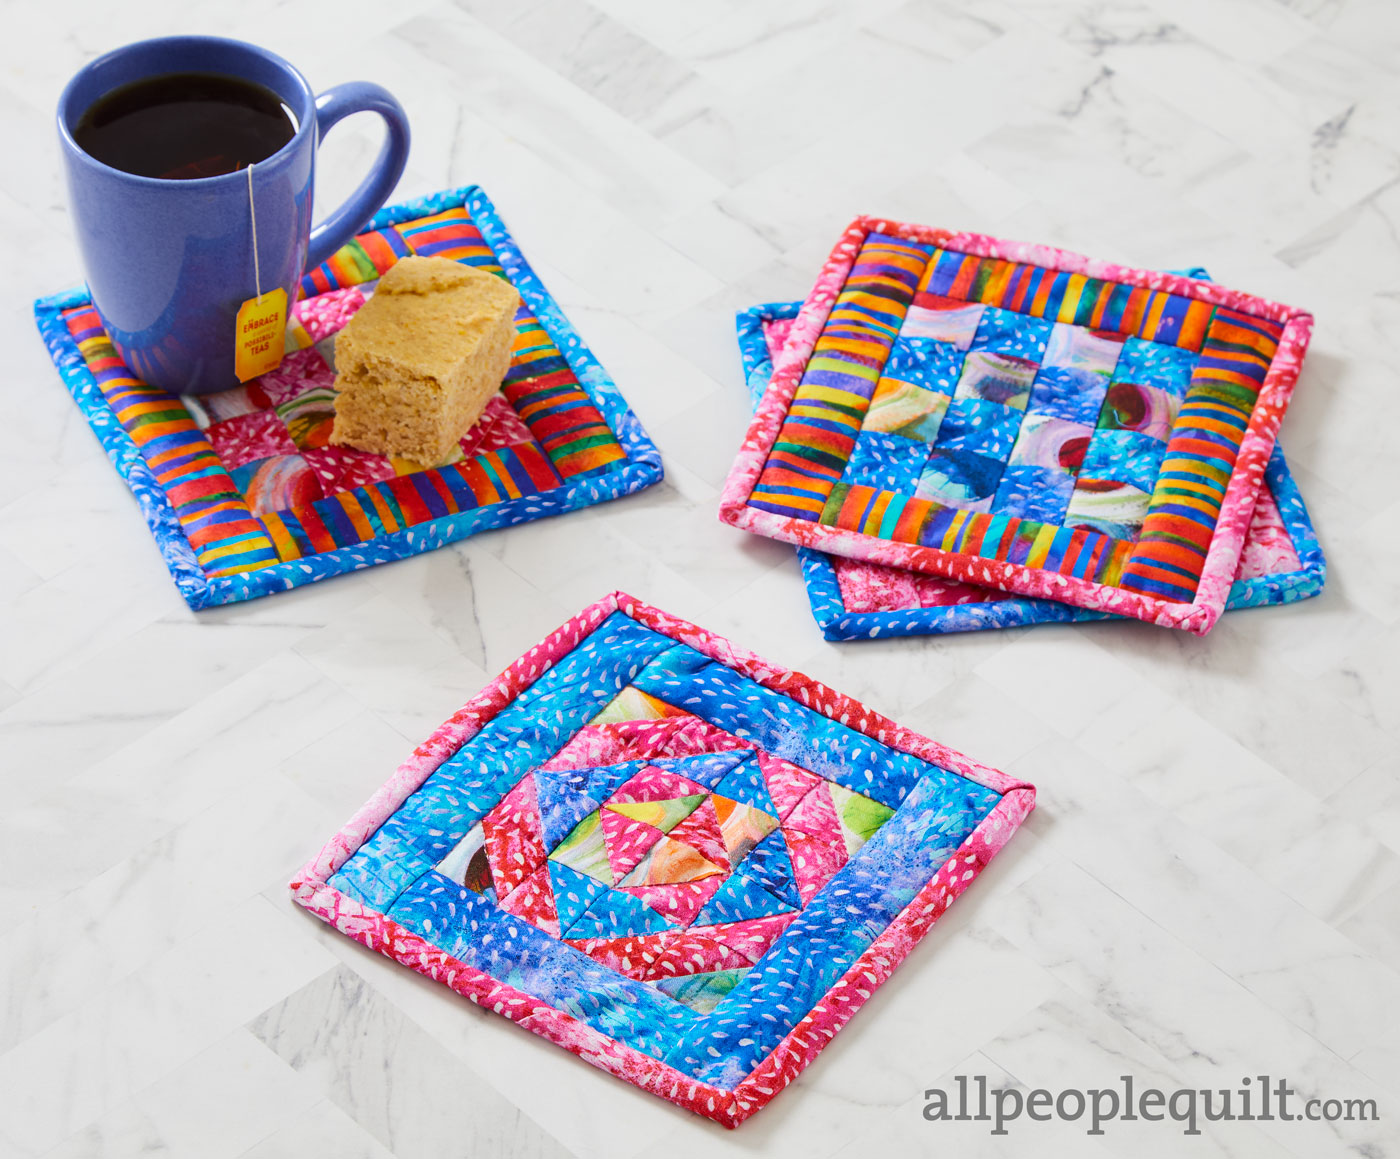 Free Coaster Patterns Allpeoplequilt Com